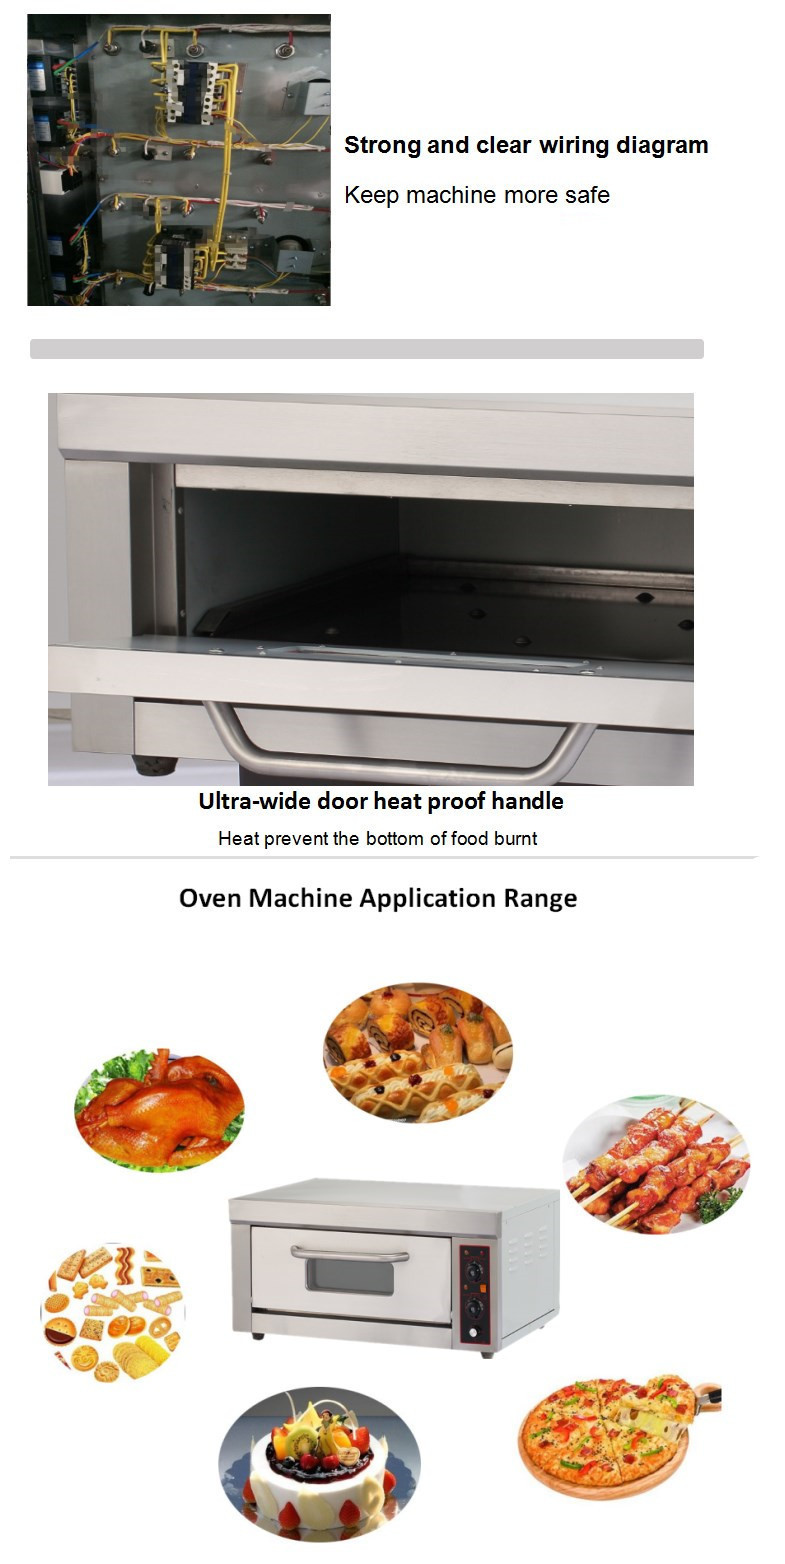 Bakery Small Oven And Cake Baking Electrical For Home Buy Wiring Diagram